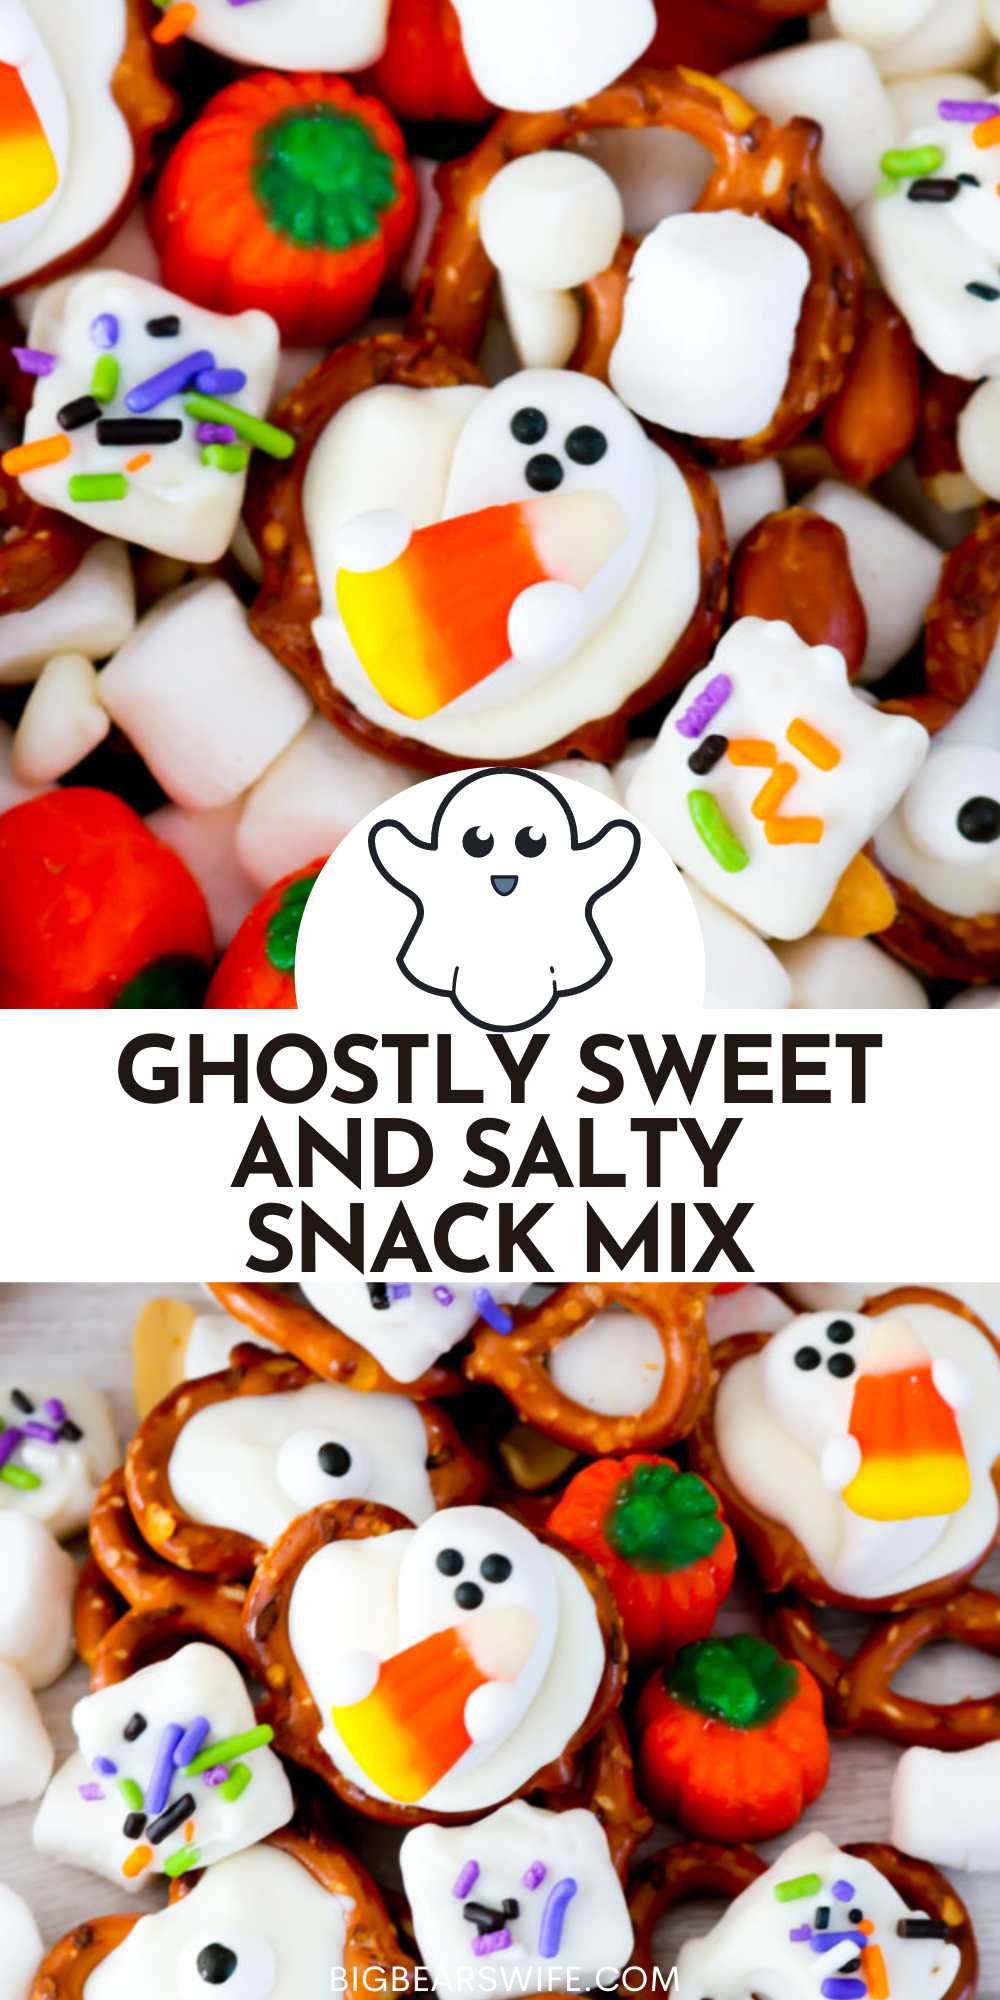 Treat your friends and family with this spooktacular Ghostly Sweet and Salty Snack Mix at your next Halloween Party! Leave the recipe as is or change it up to add whatever you like!